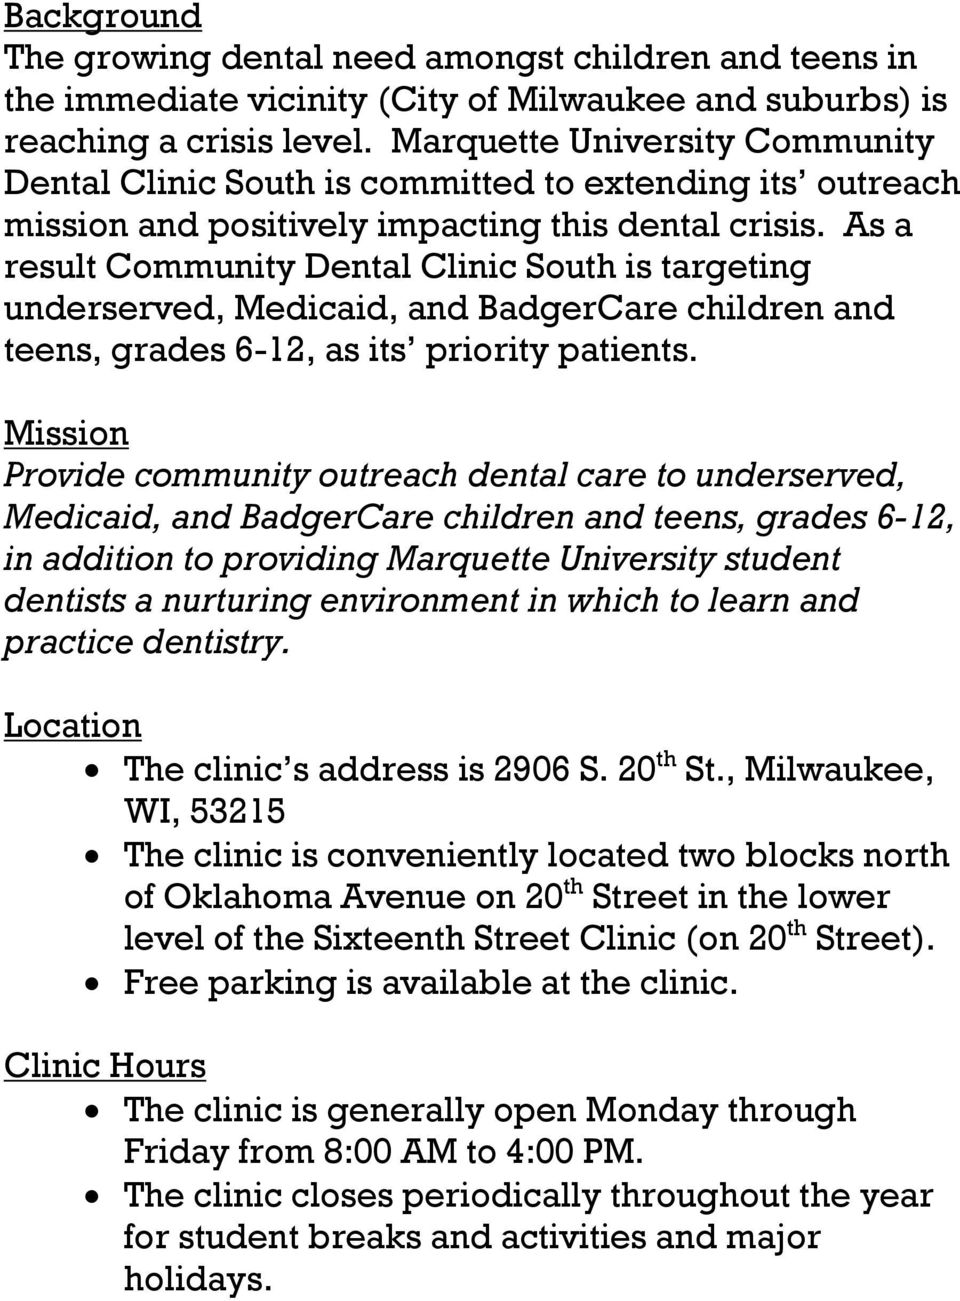 As a result Community Dental Clinic South is targeting underserved, Medicaid, and BadgerCare children and teens, grades 6-12, as its priority patients.